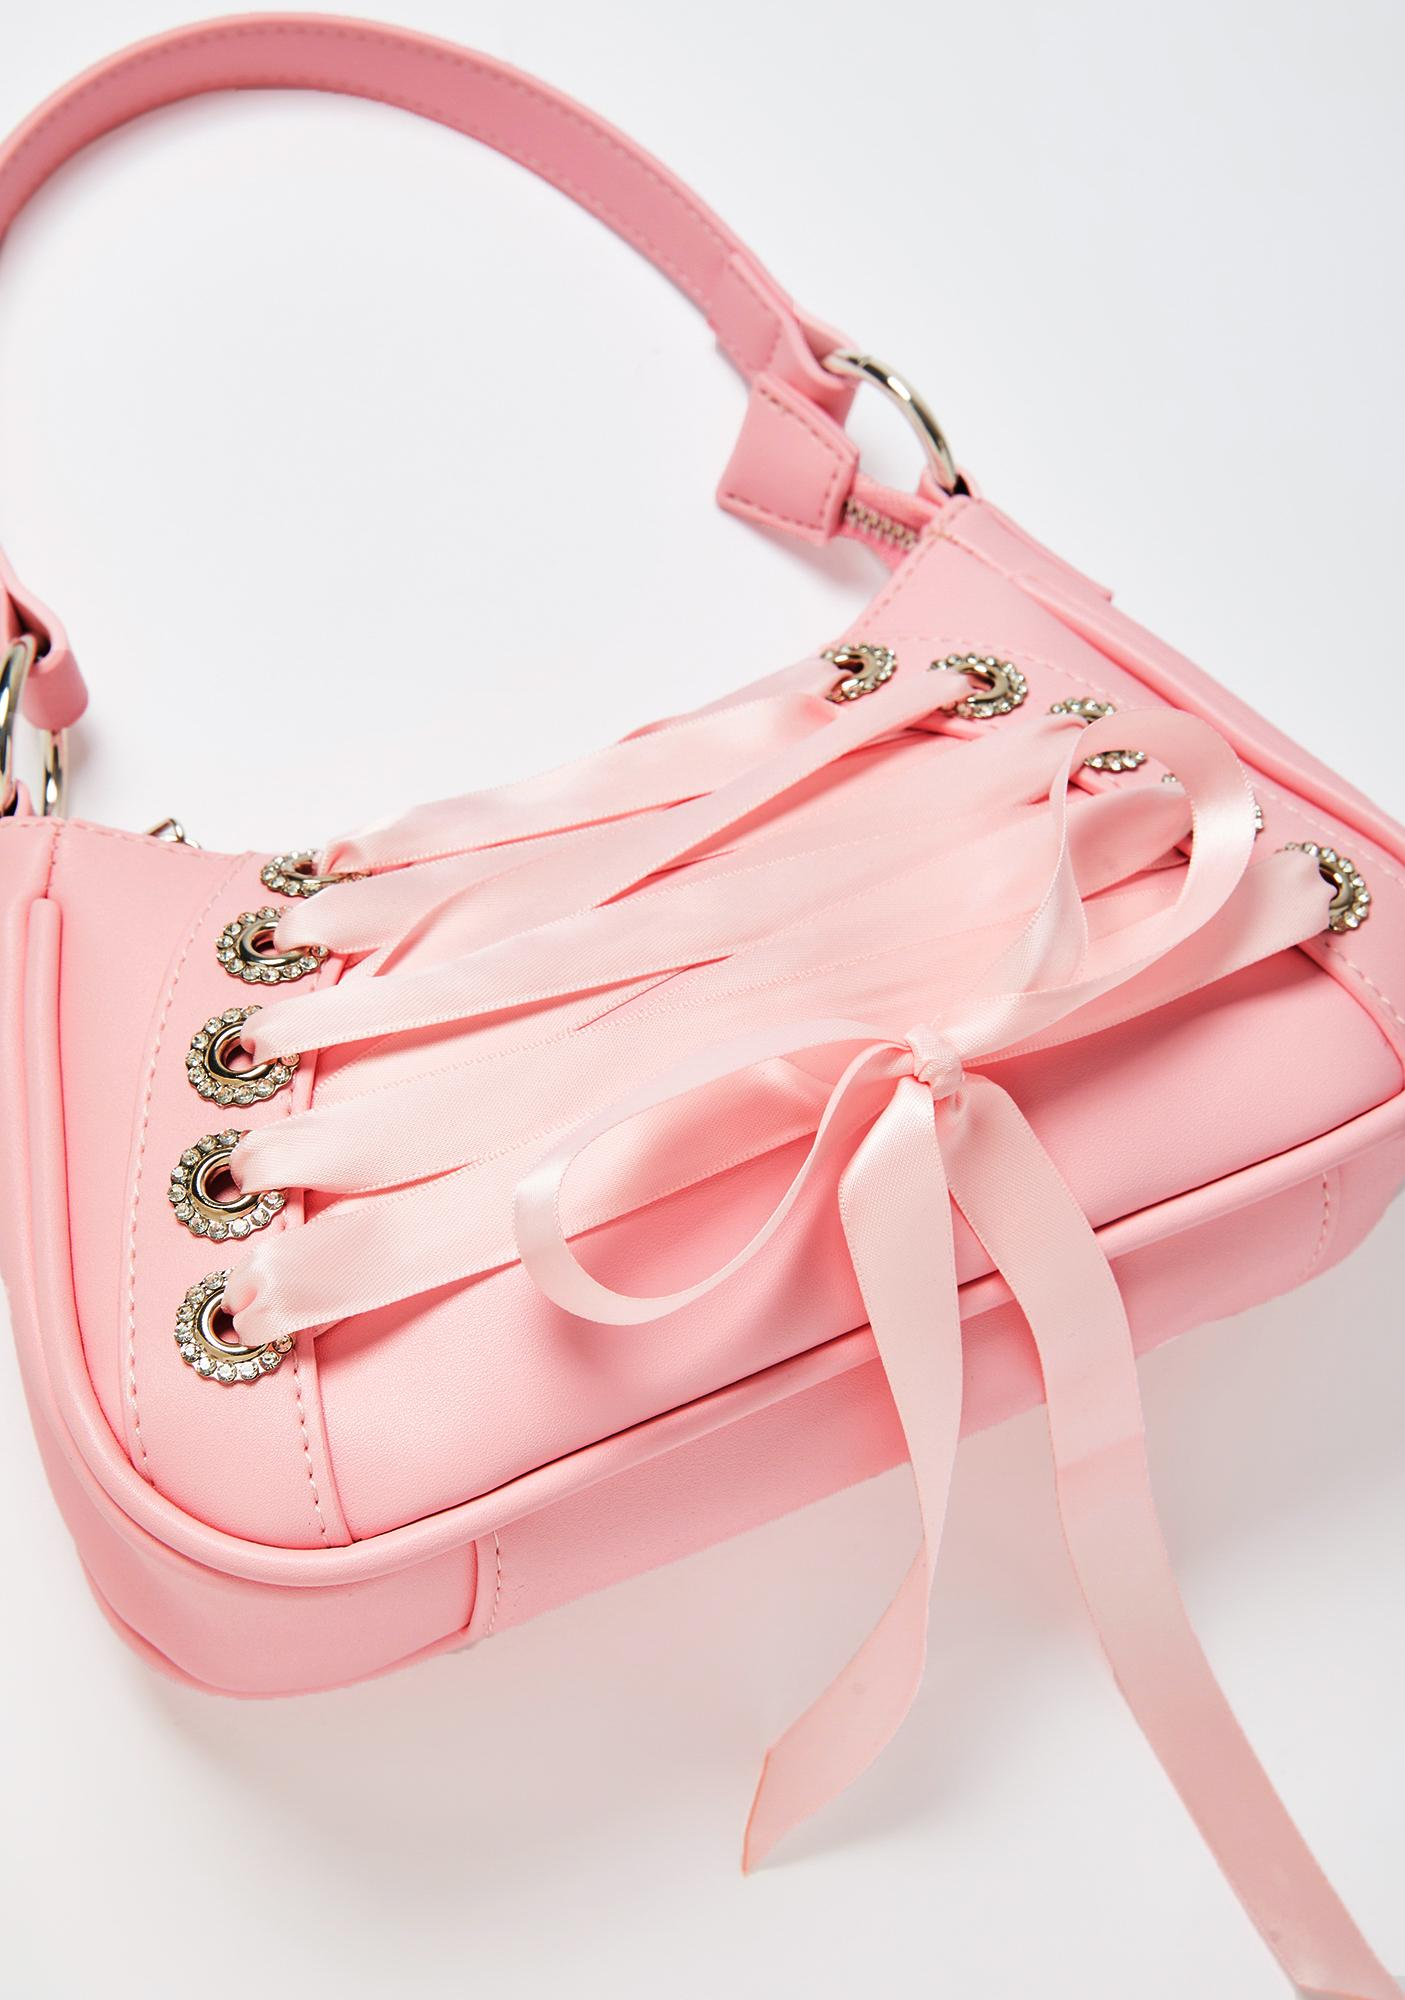 Sugar Thrillz Secret Ballerina Mini Purse